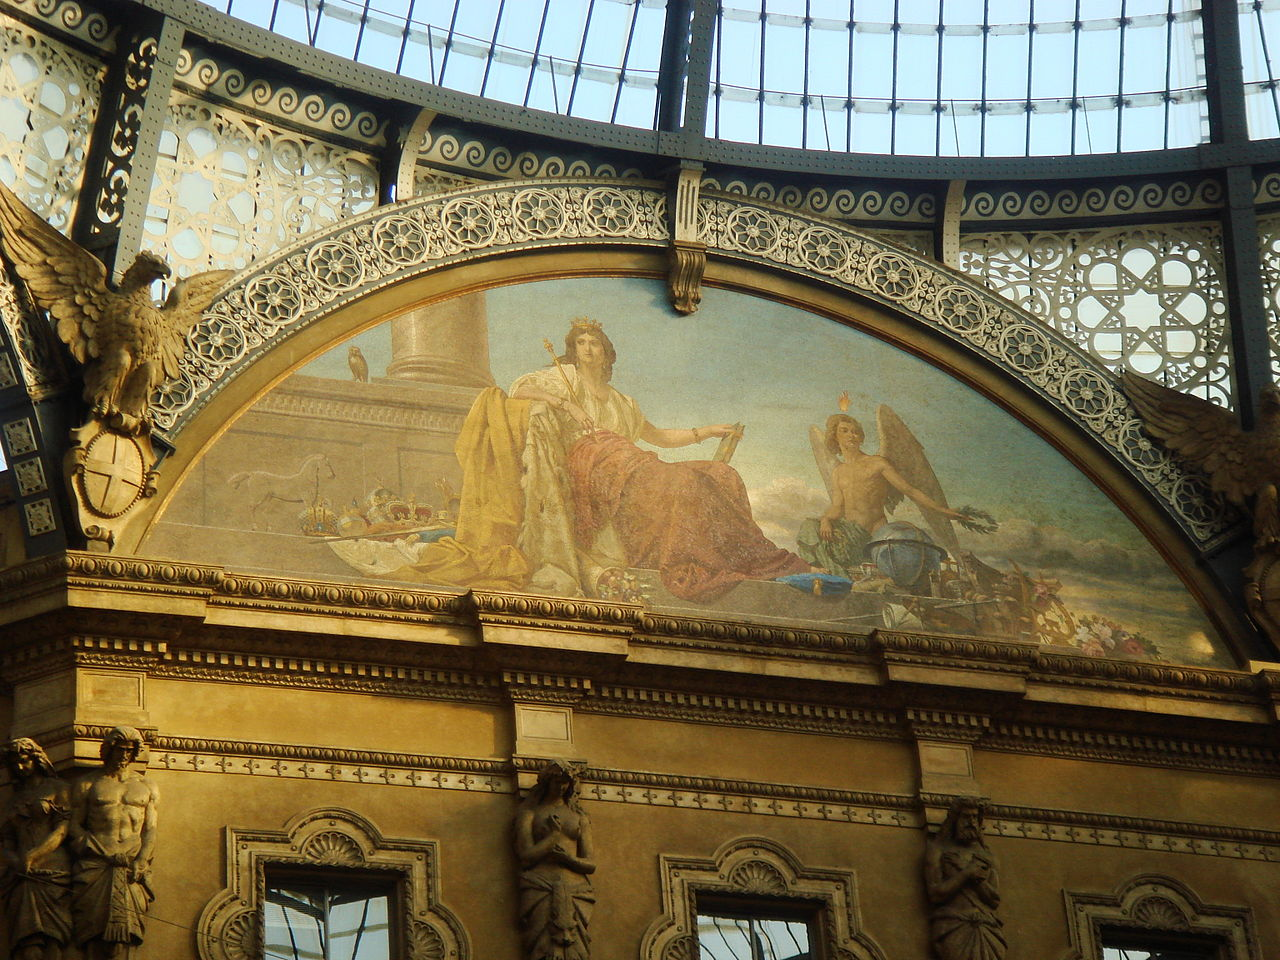 Allegorical mosaic Europe and her Genius, Gallery Vittorio Emanuele II in Milan, Italy, by Giovanni Dall'Orto